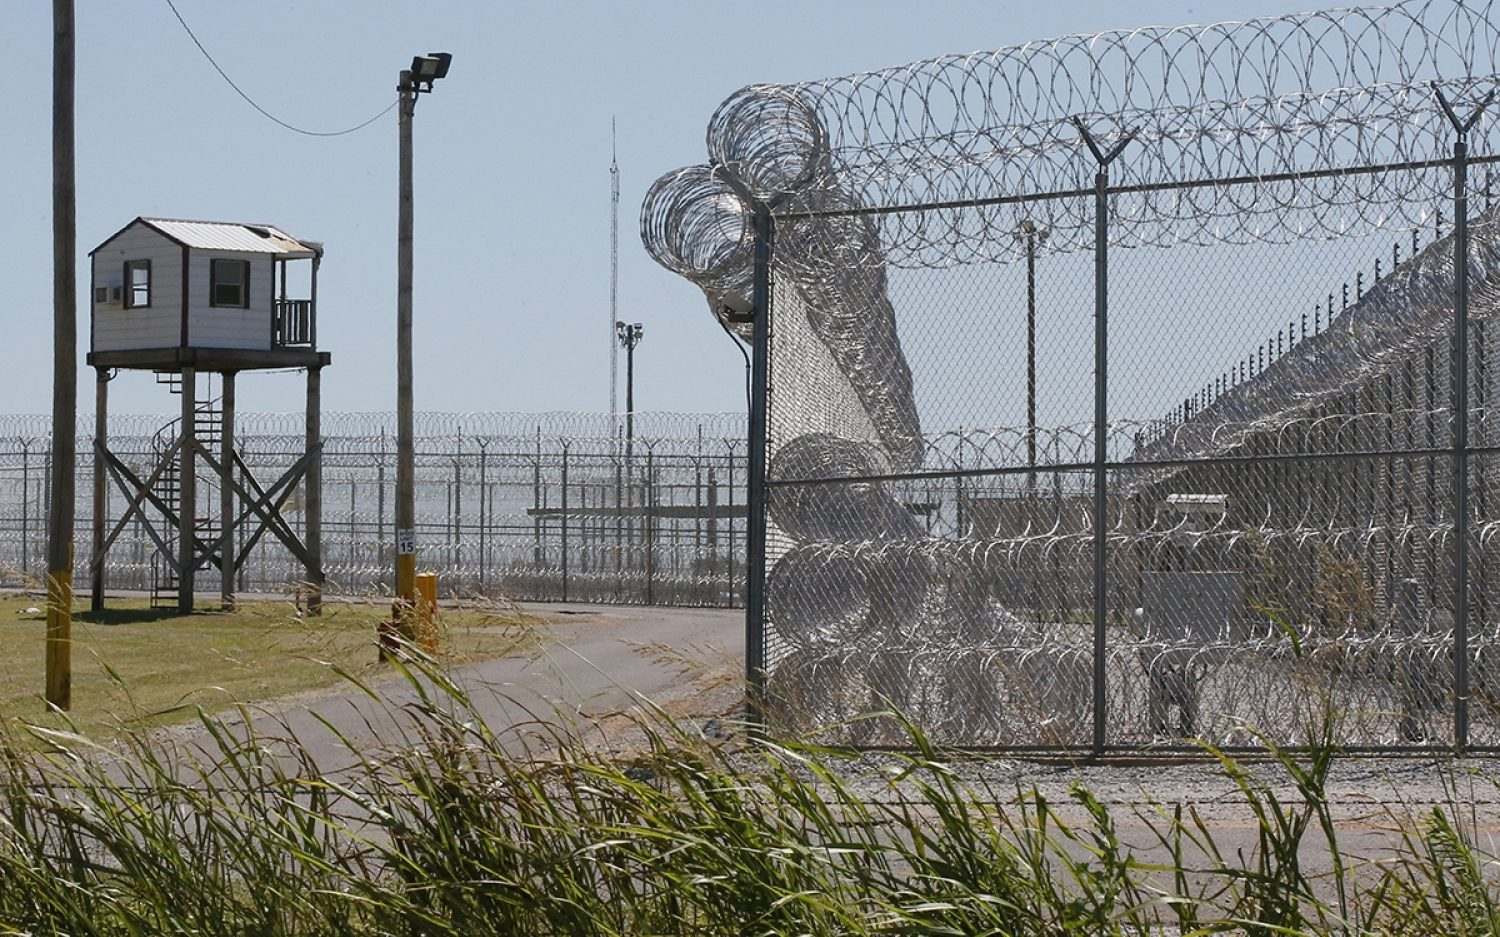 Biden takes one small step for prison reform